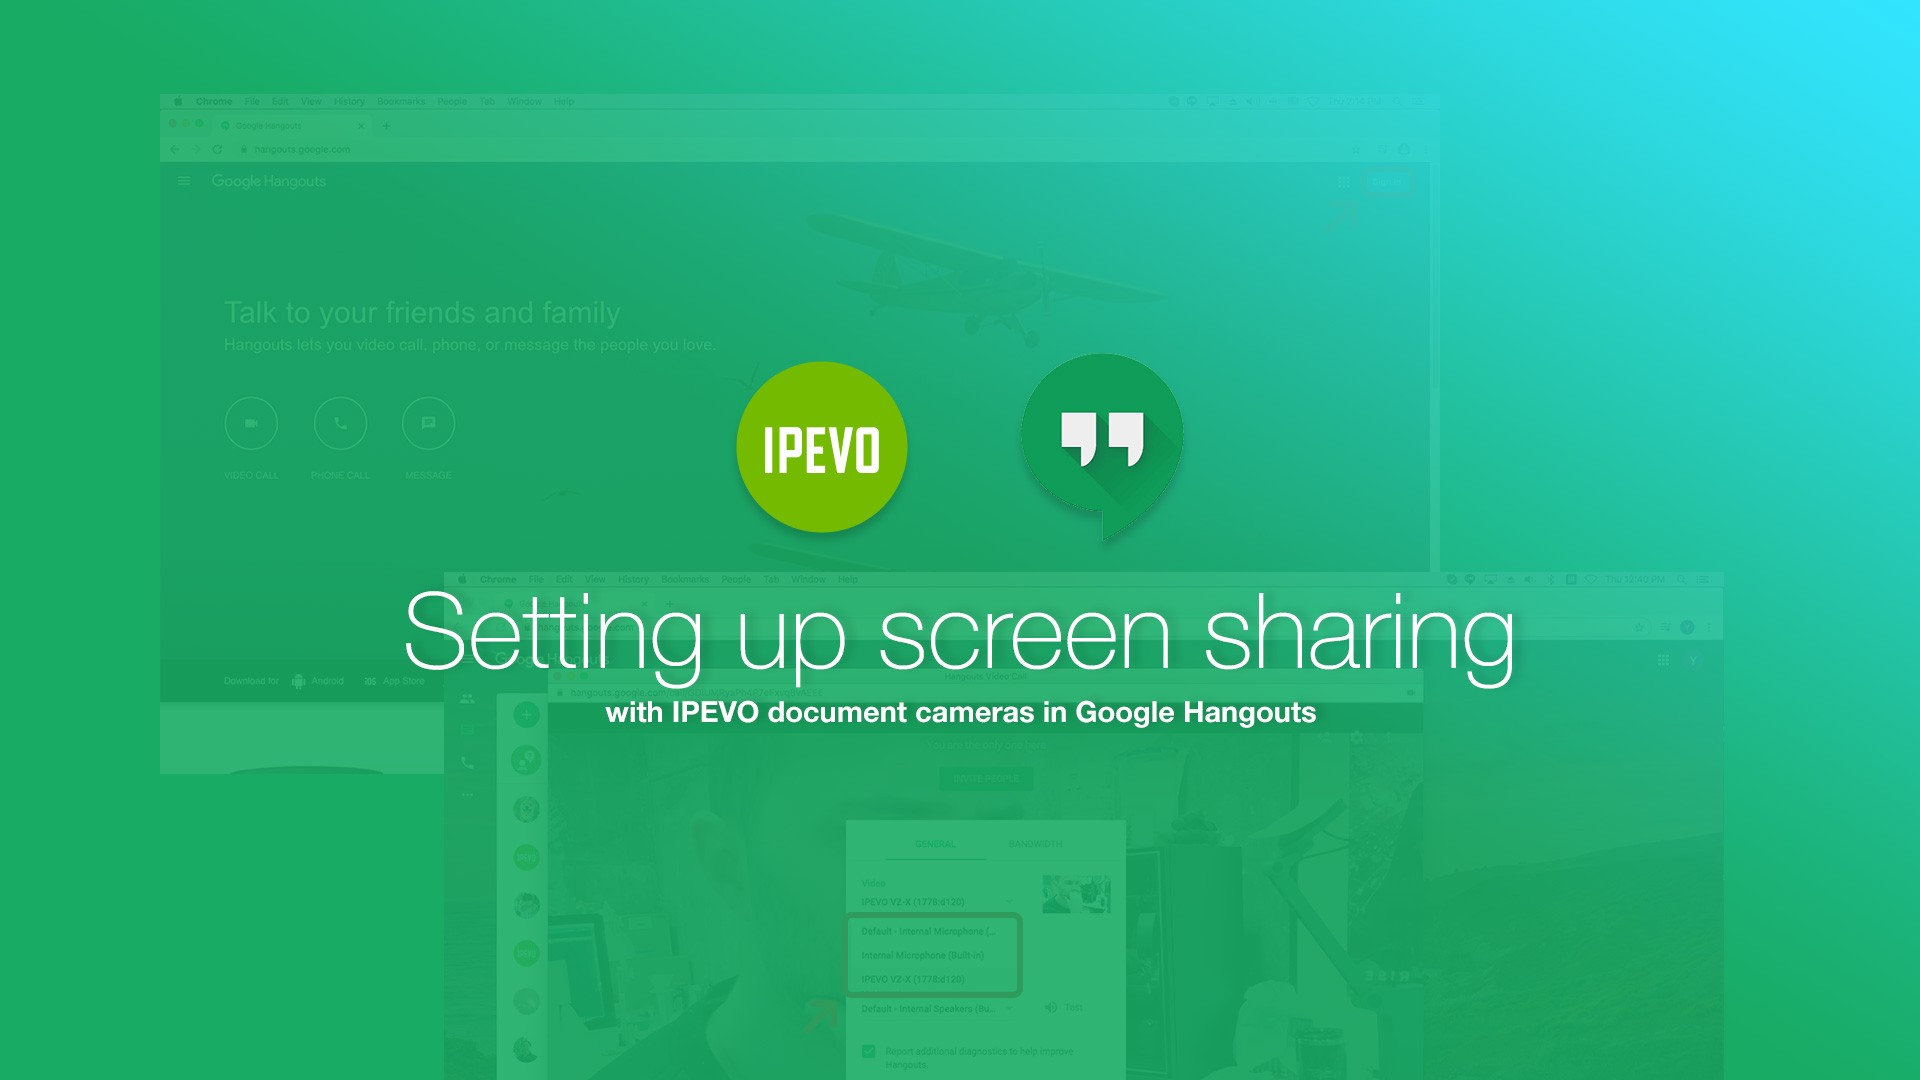 Setting up screen sharing with IPEVO document cameras in Google Hangouts